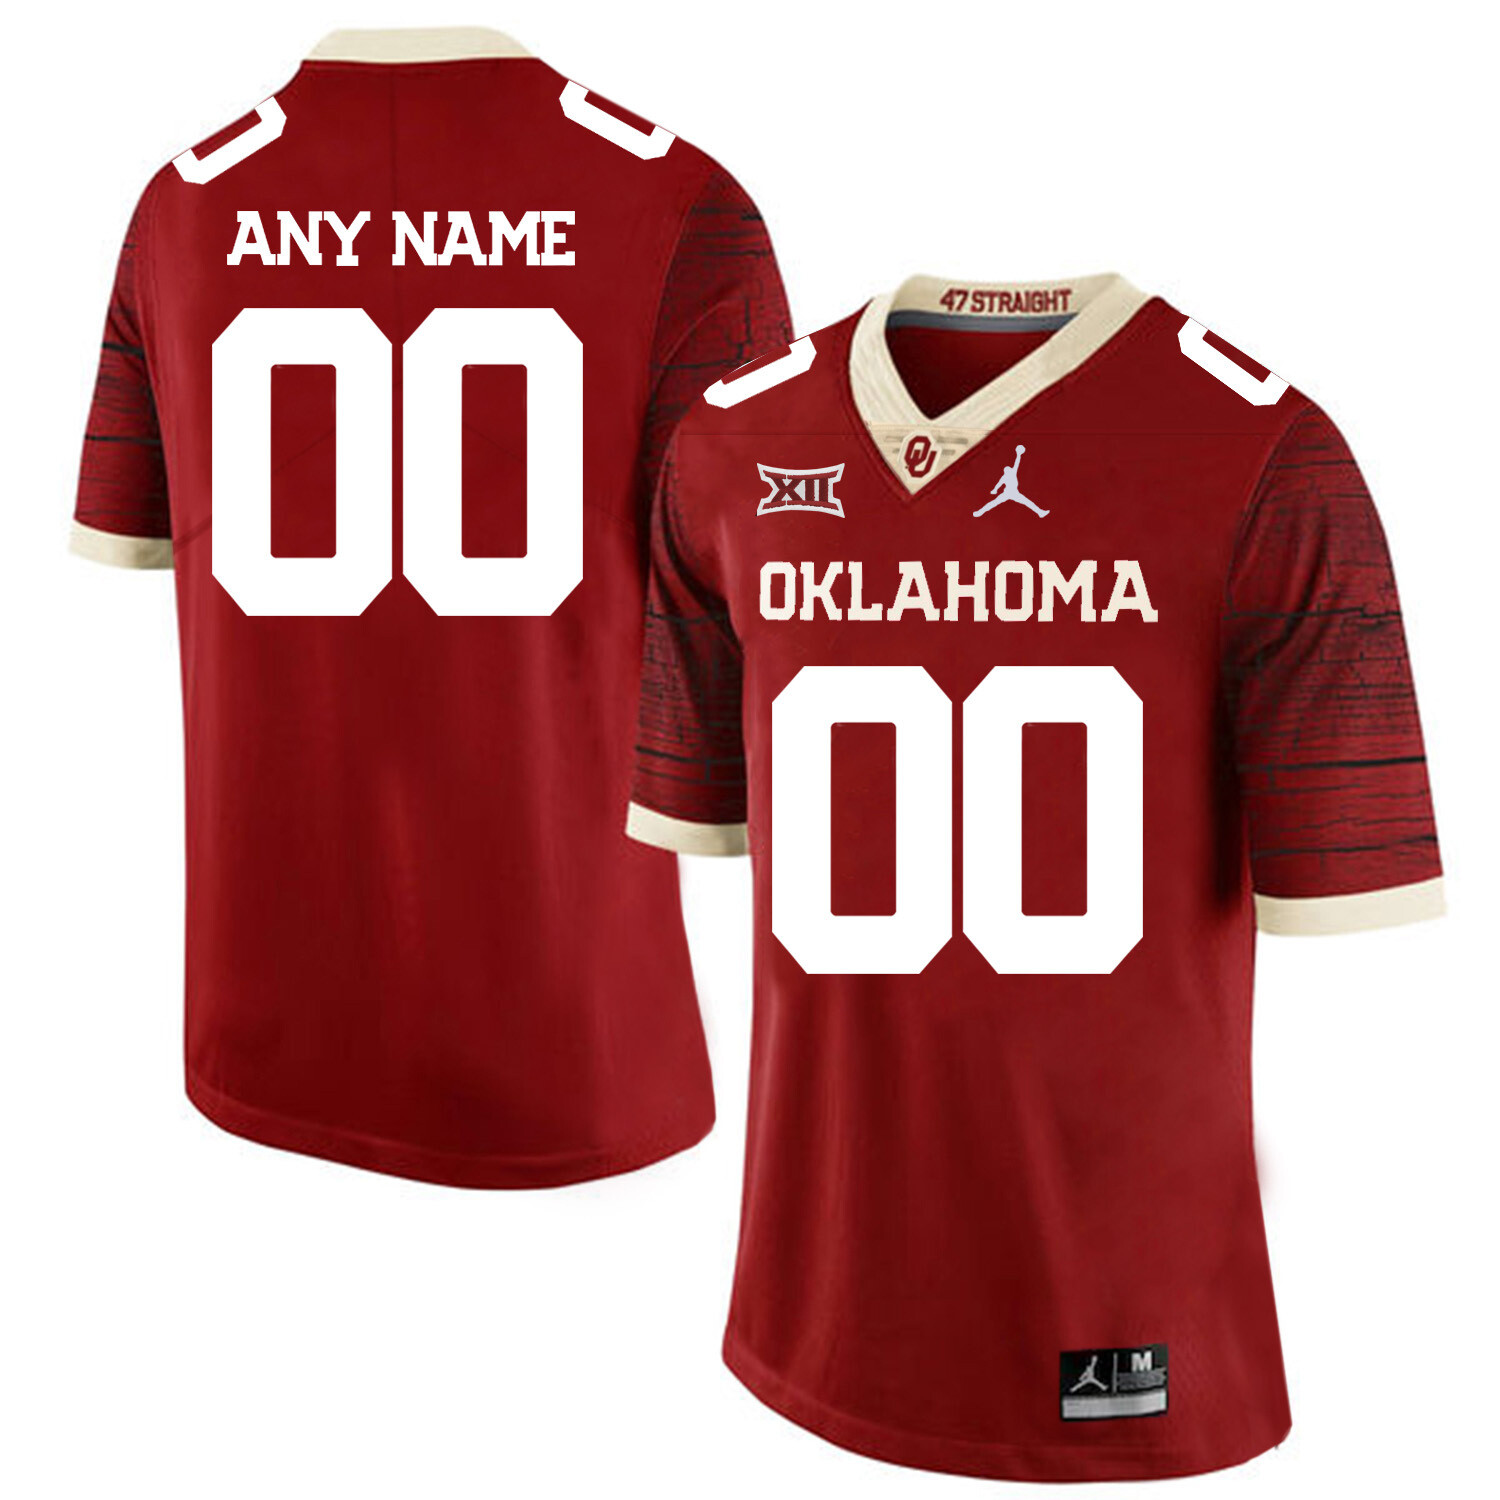 Oklahoma Sooners Custom Name and Number Football Jersey Red